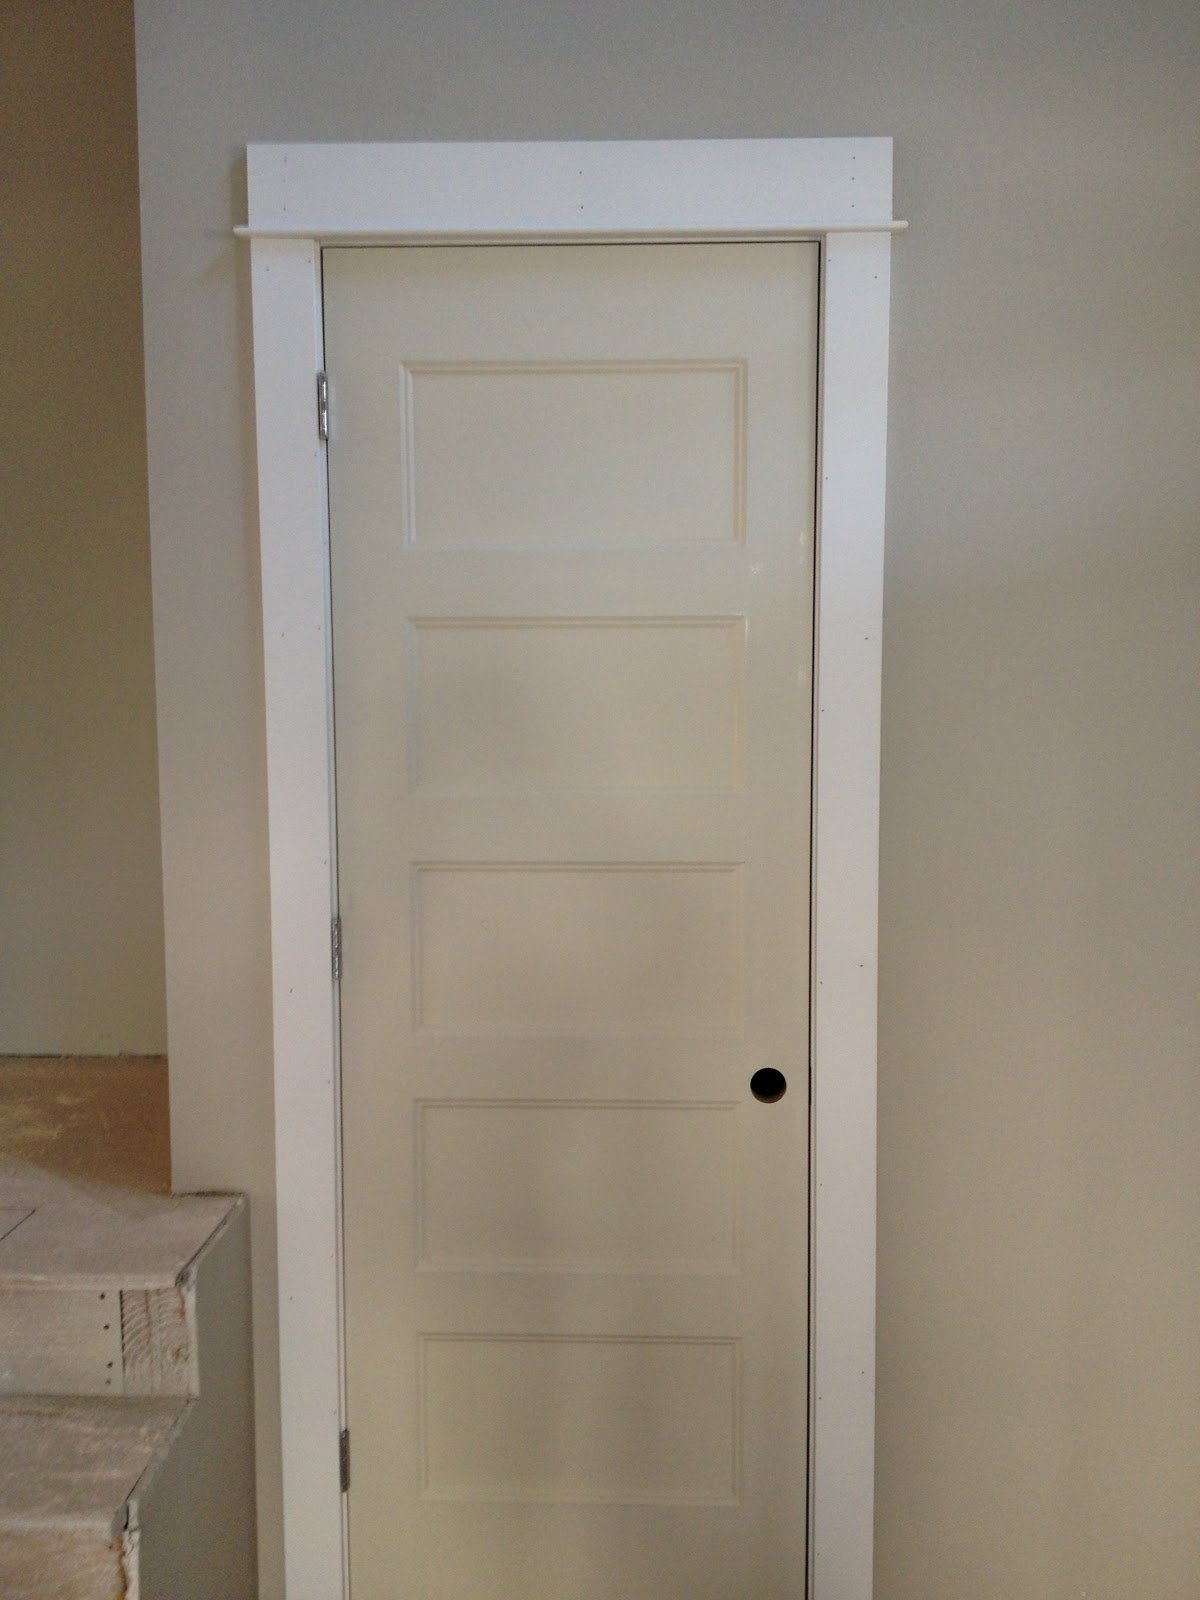 5 Panel Interior Door Small